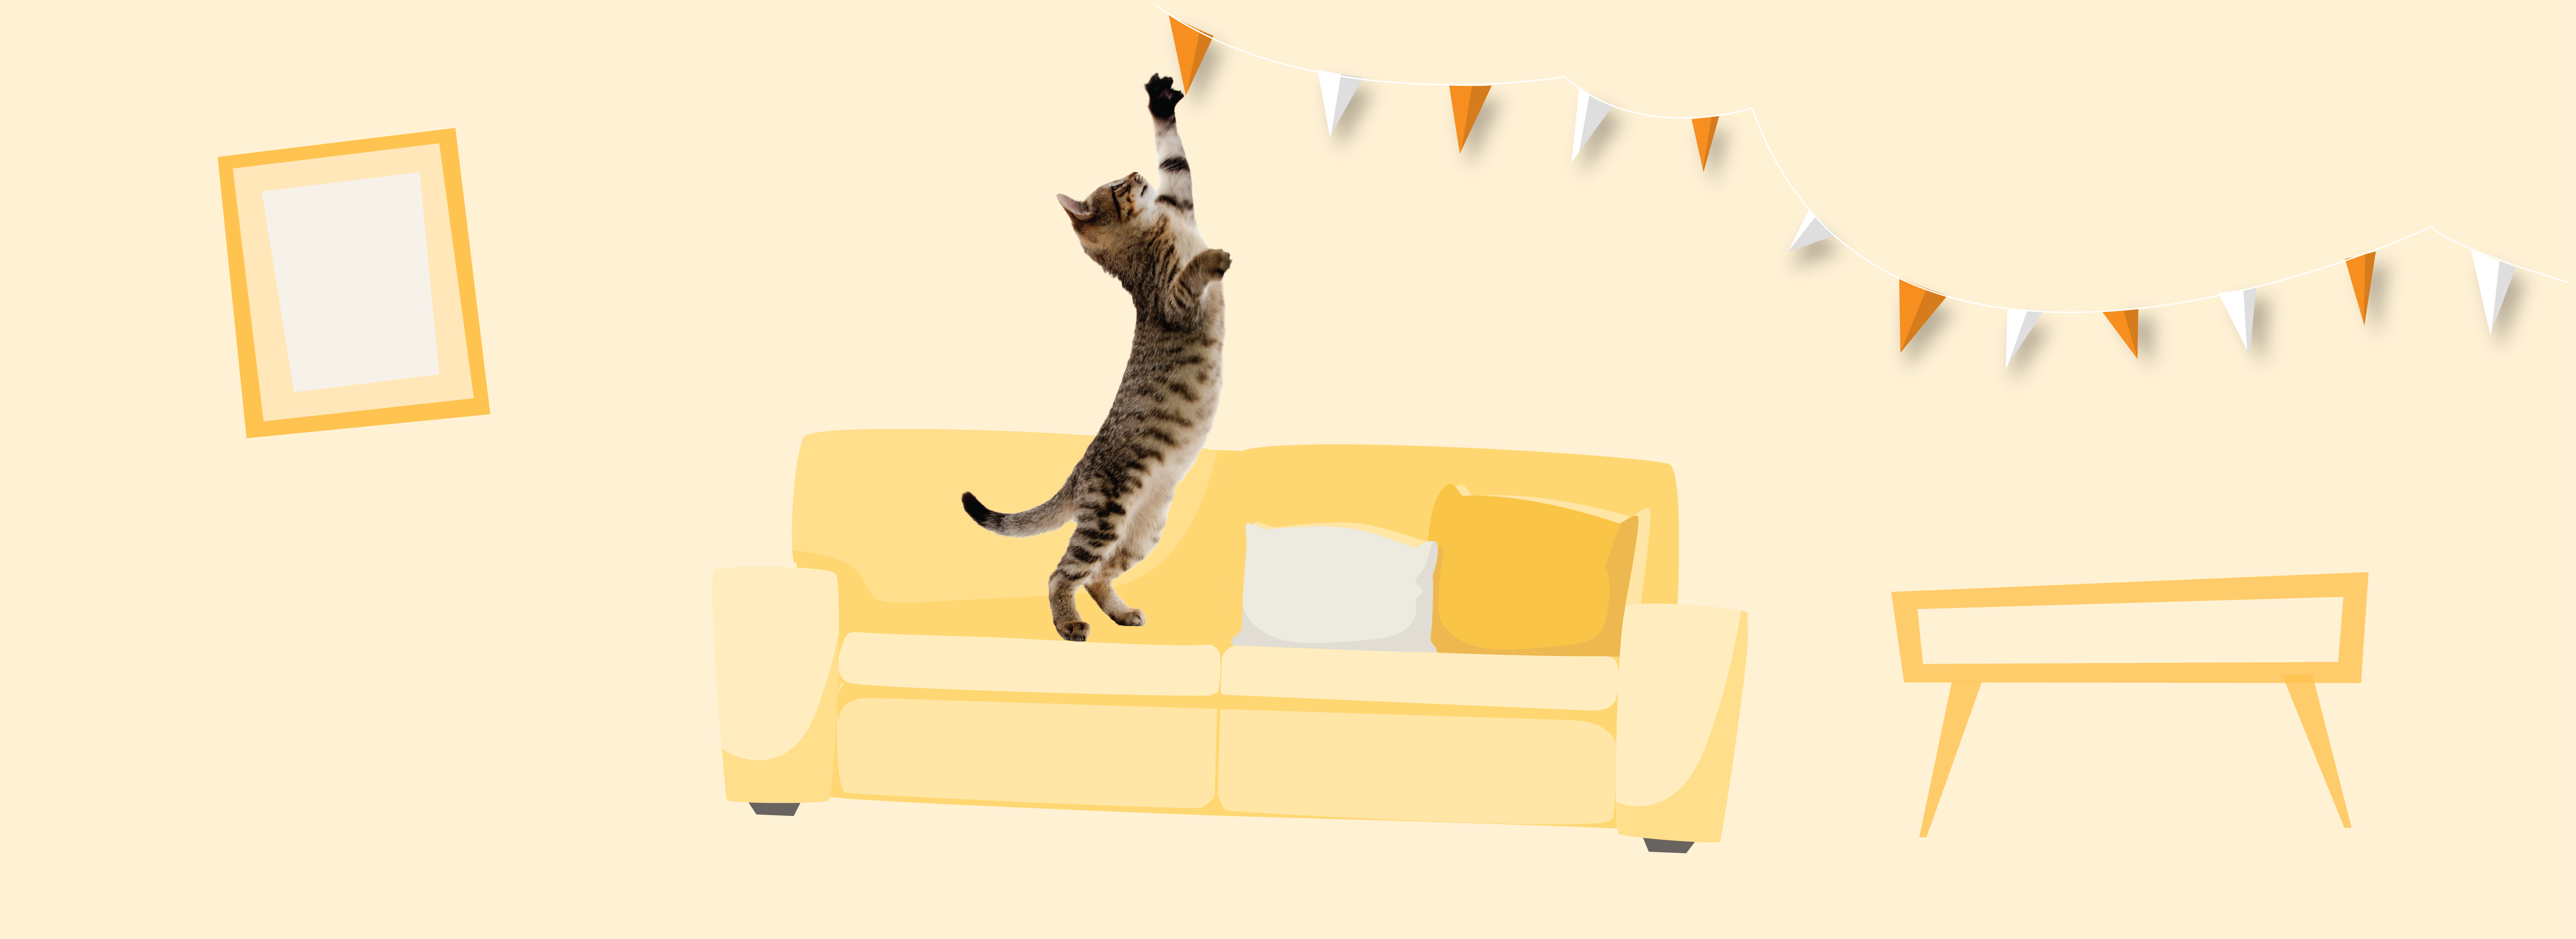 Cat on yellow couch